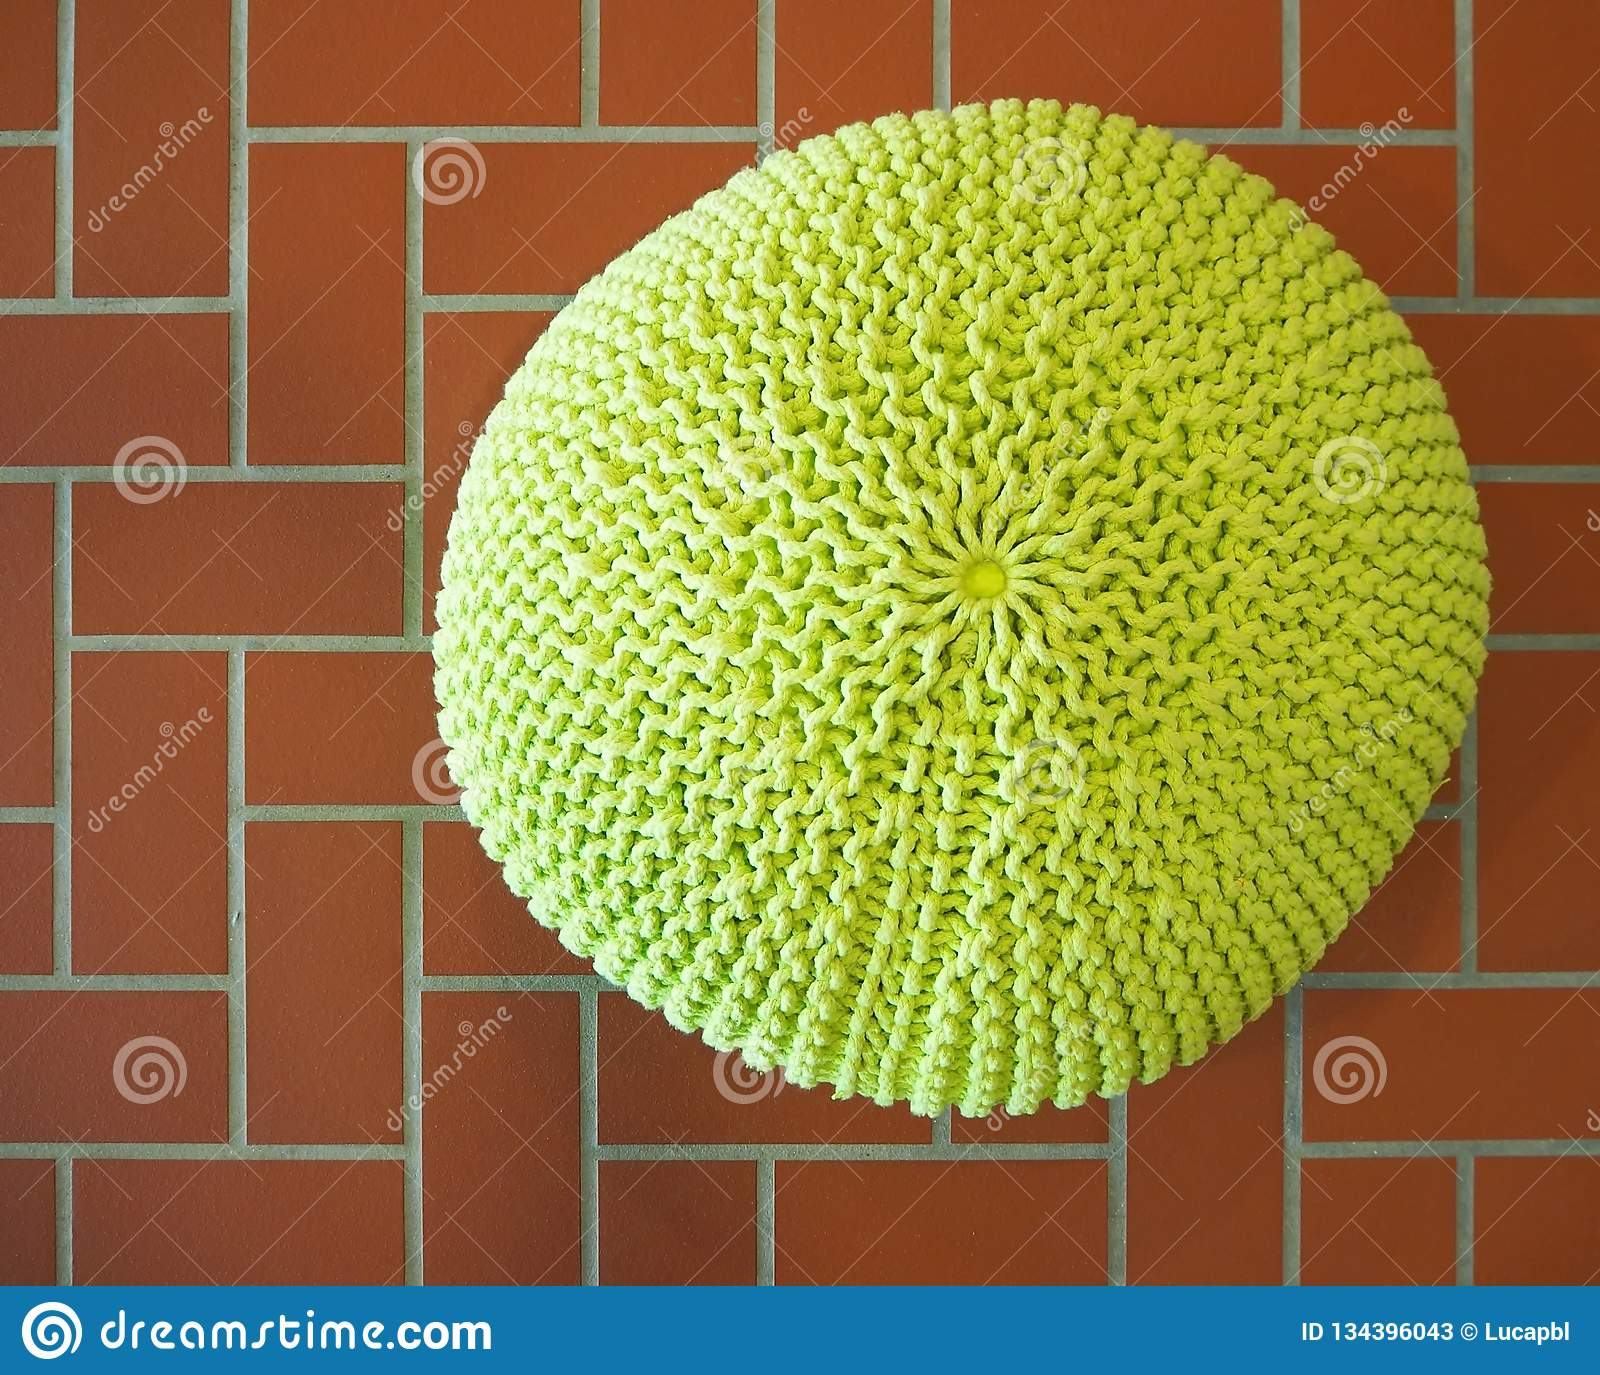 Top view of a yellow wool pouf on terracotta tiles floor